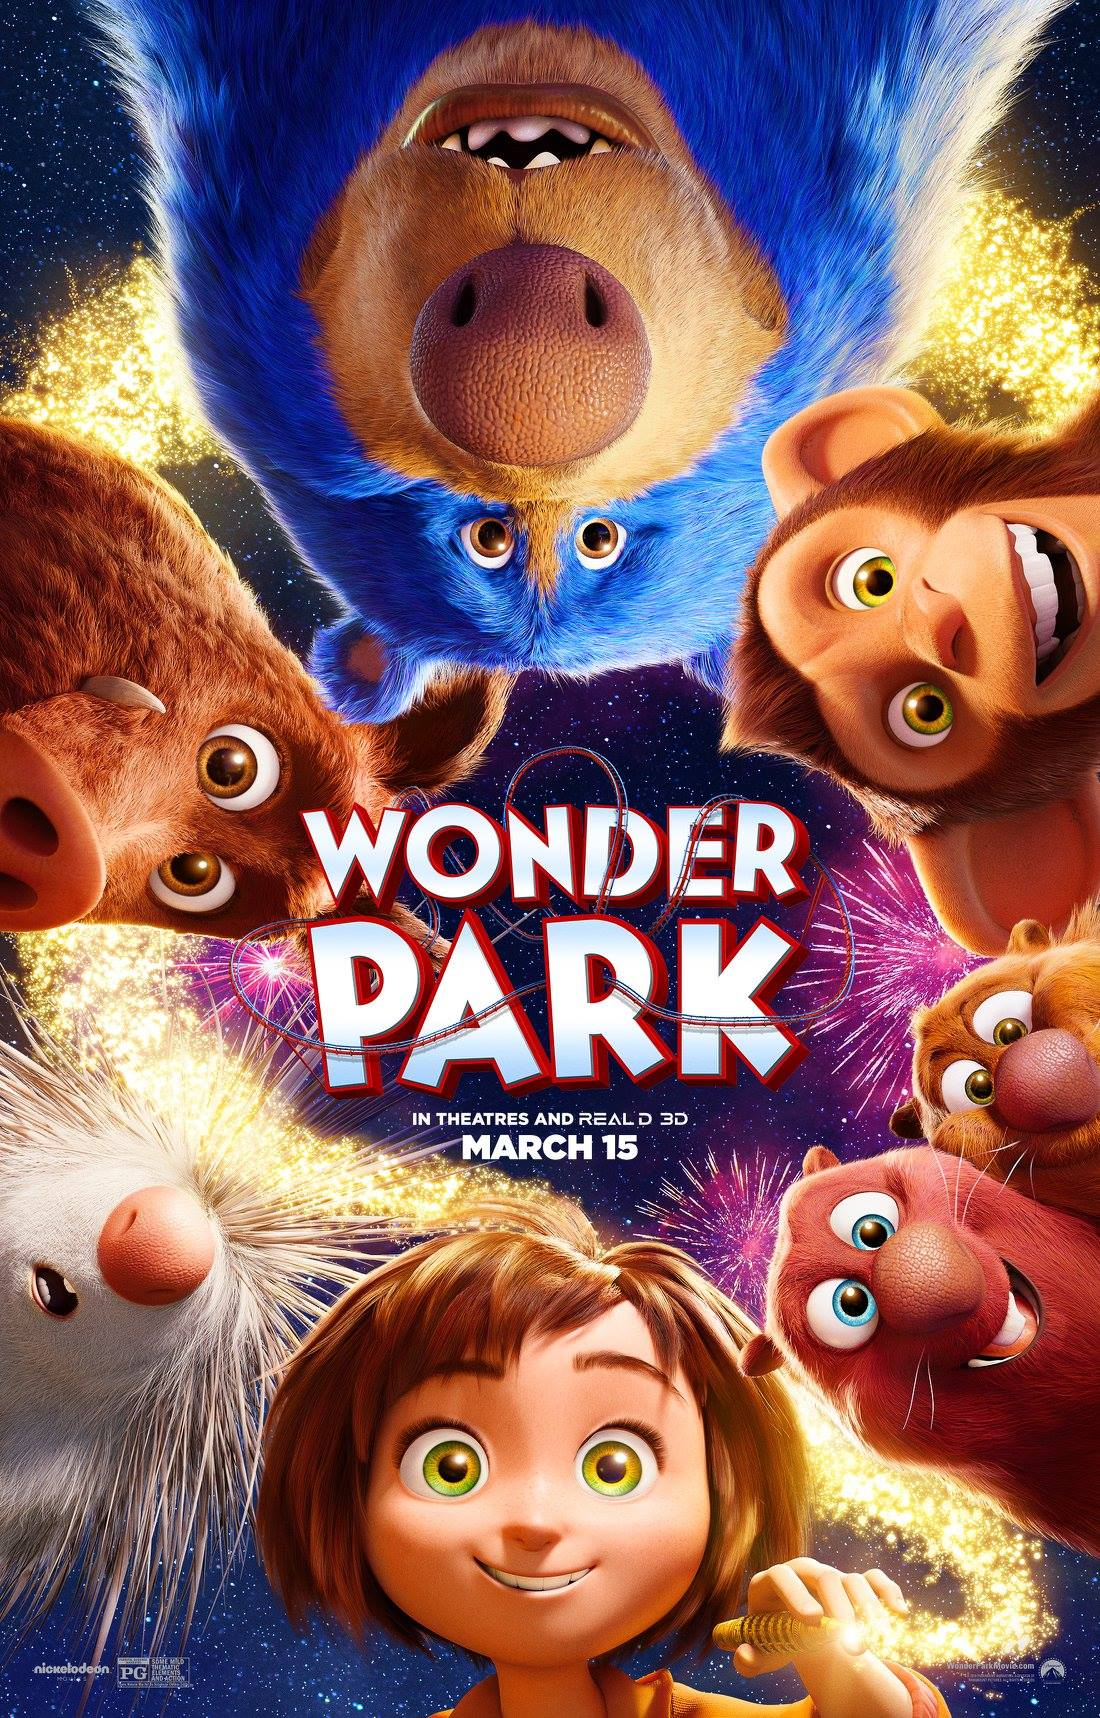 Experience the wonder of Wonder Park in theatres this Friday!